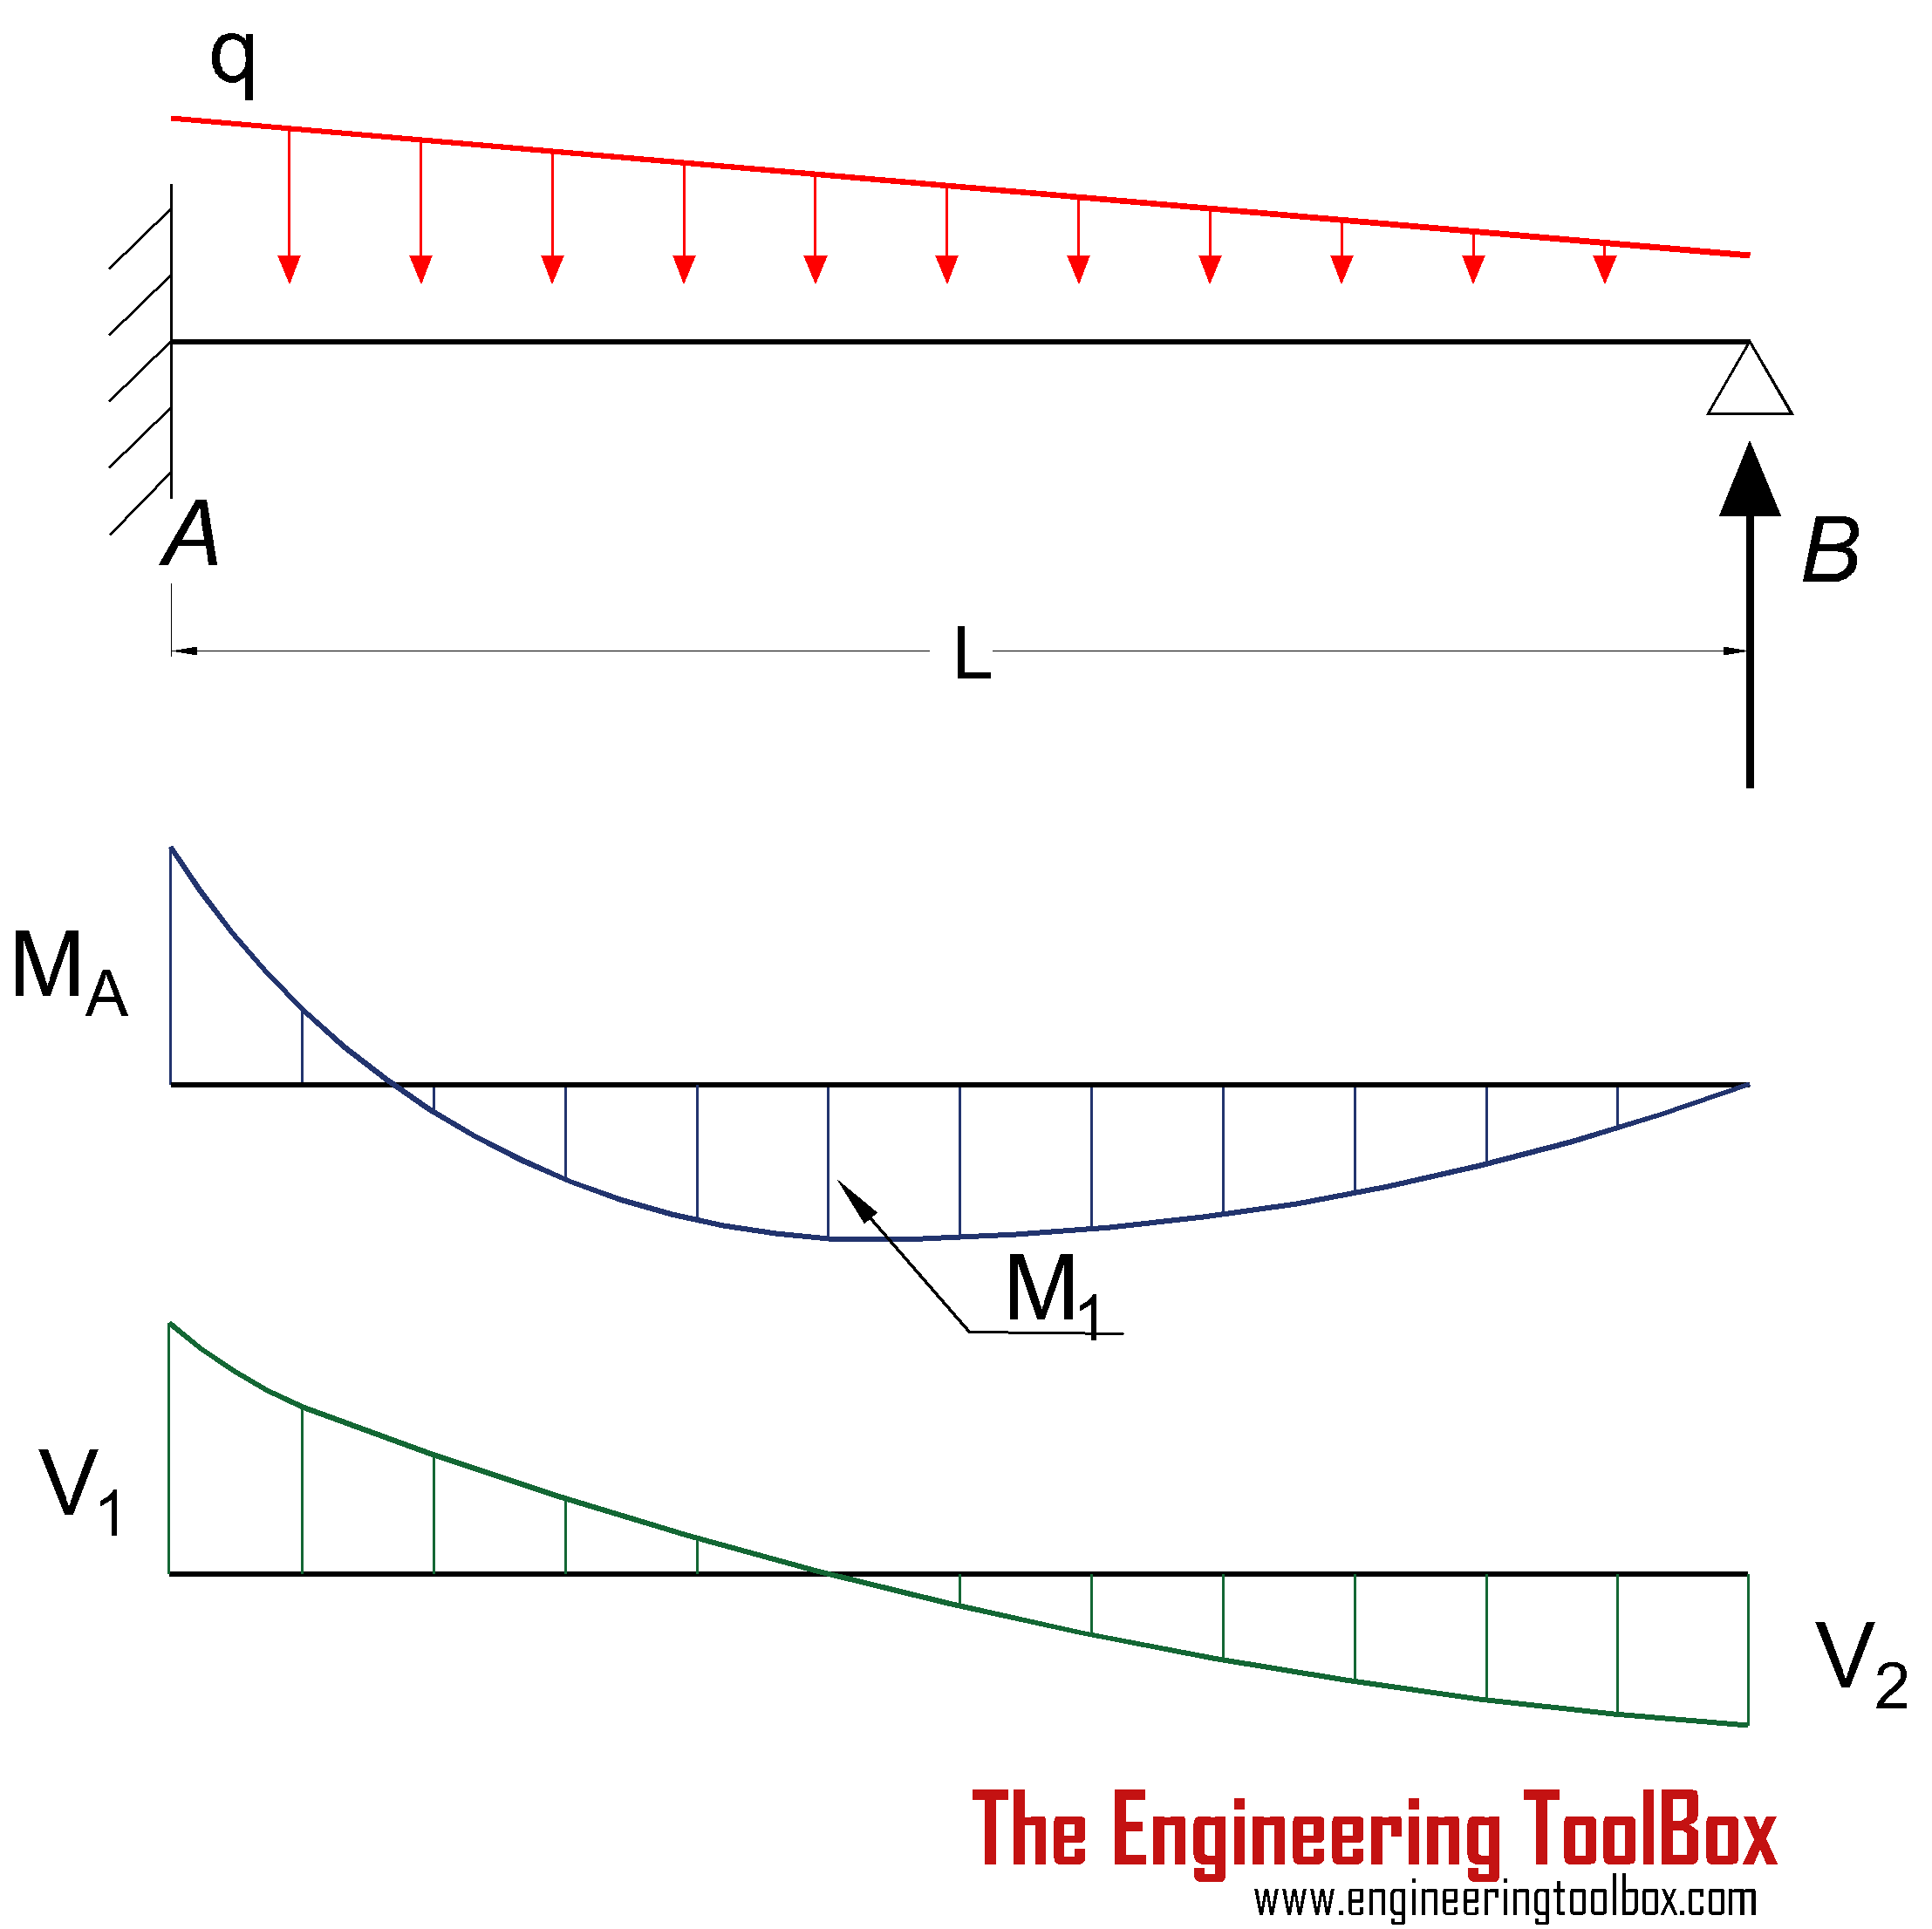 The Shear Force Bending Moment Diagrams For The Cantilever Beam